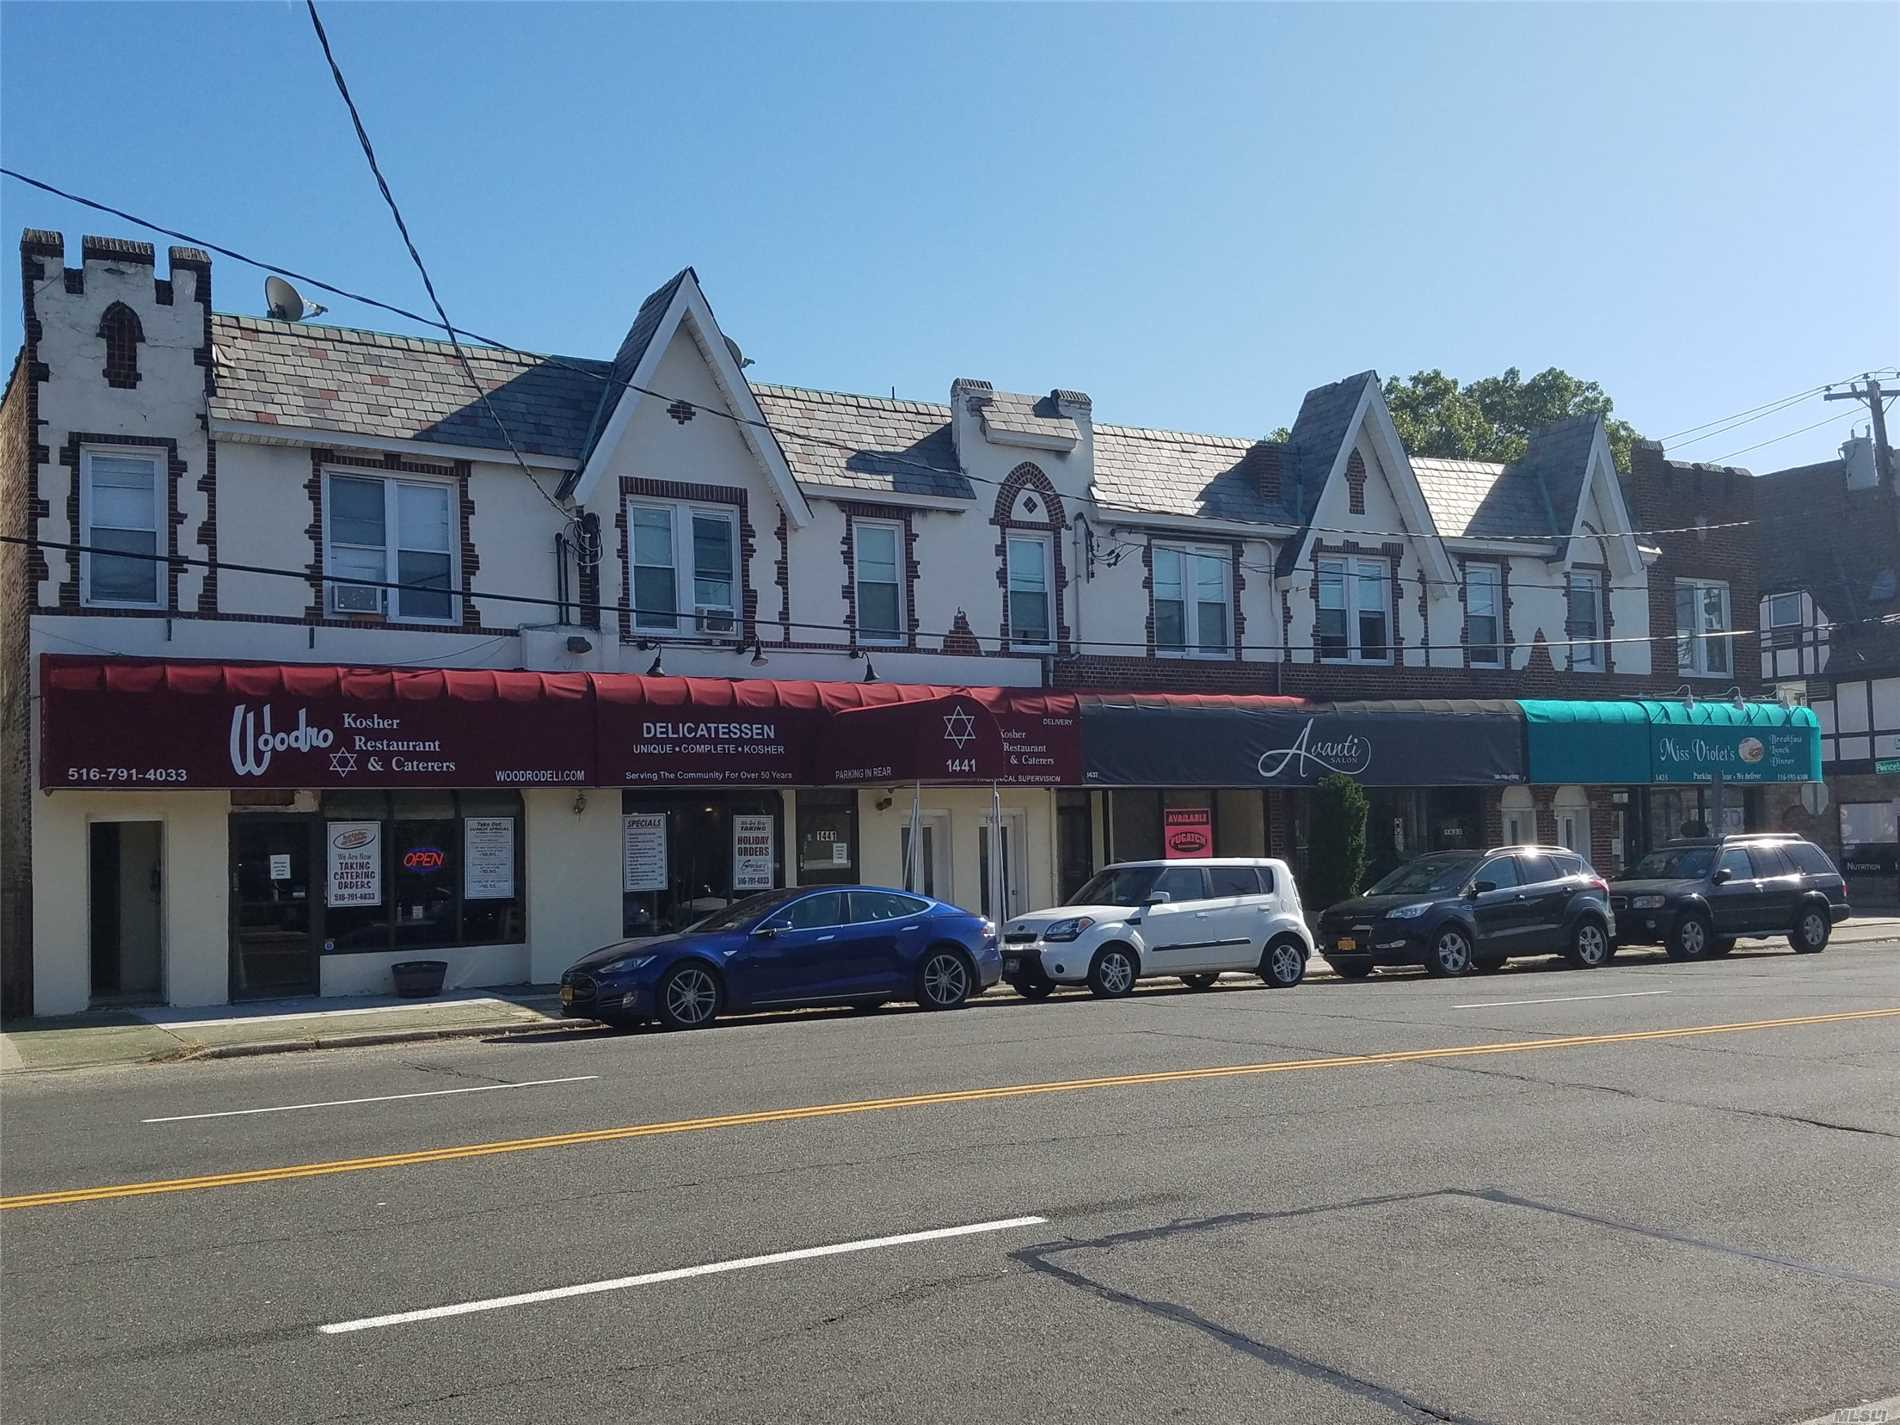 Beautiful 1920'S Tudo Style Building Heat, Hot Water & Cooking Gas Incl. Tuscany Style Kitchens W/Dishwasher & Microwave. Granite Bath W/Frameless Shower Doors. Central Air-Conditioned. City Style, Close To Lirr, Great Walk Score Near All.